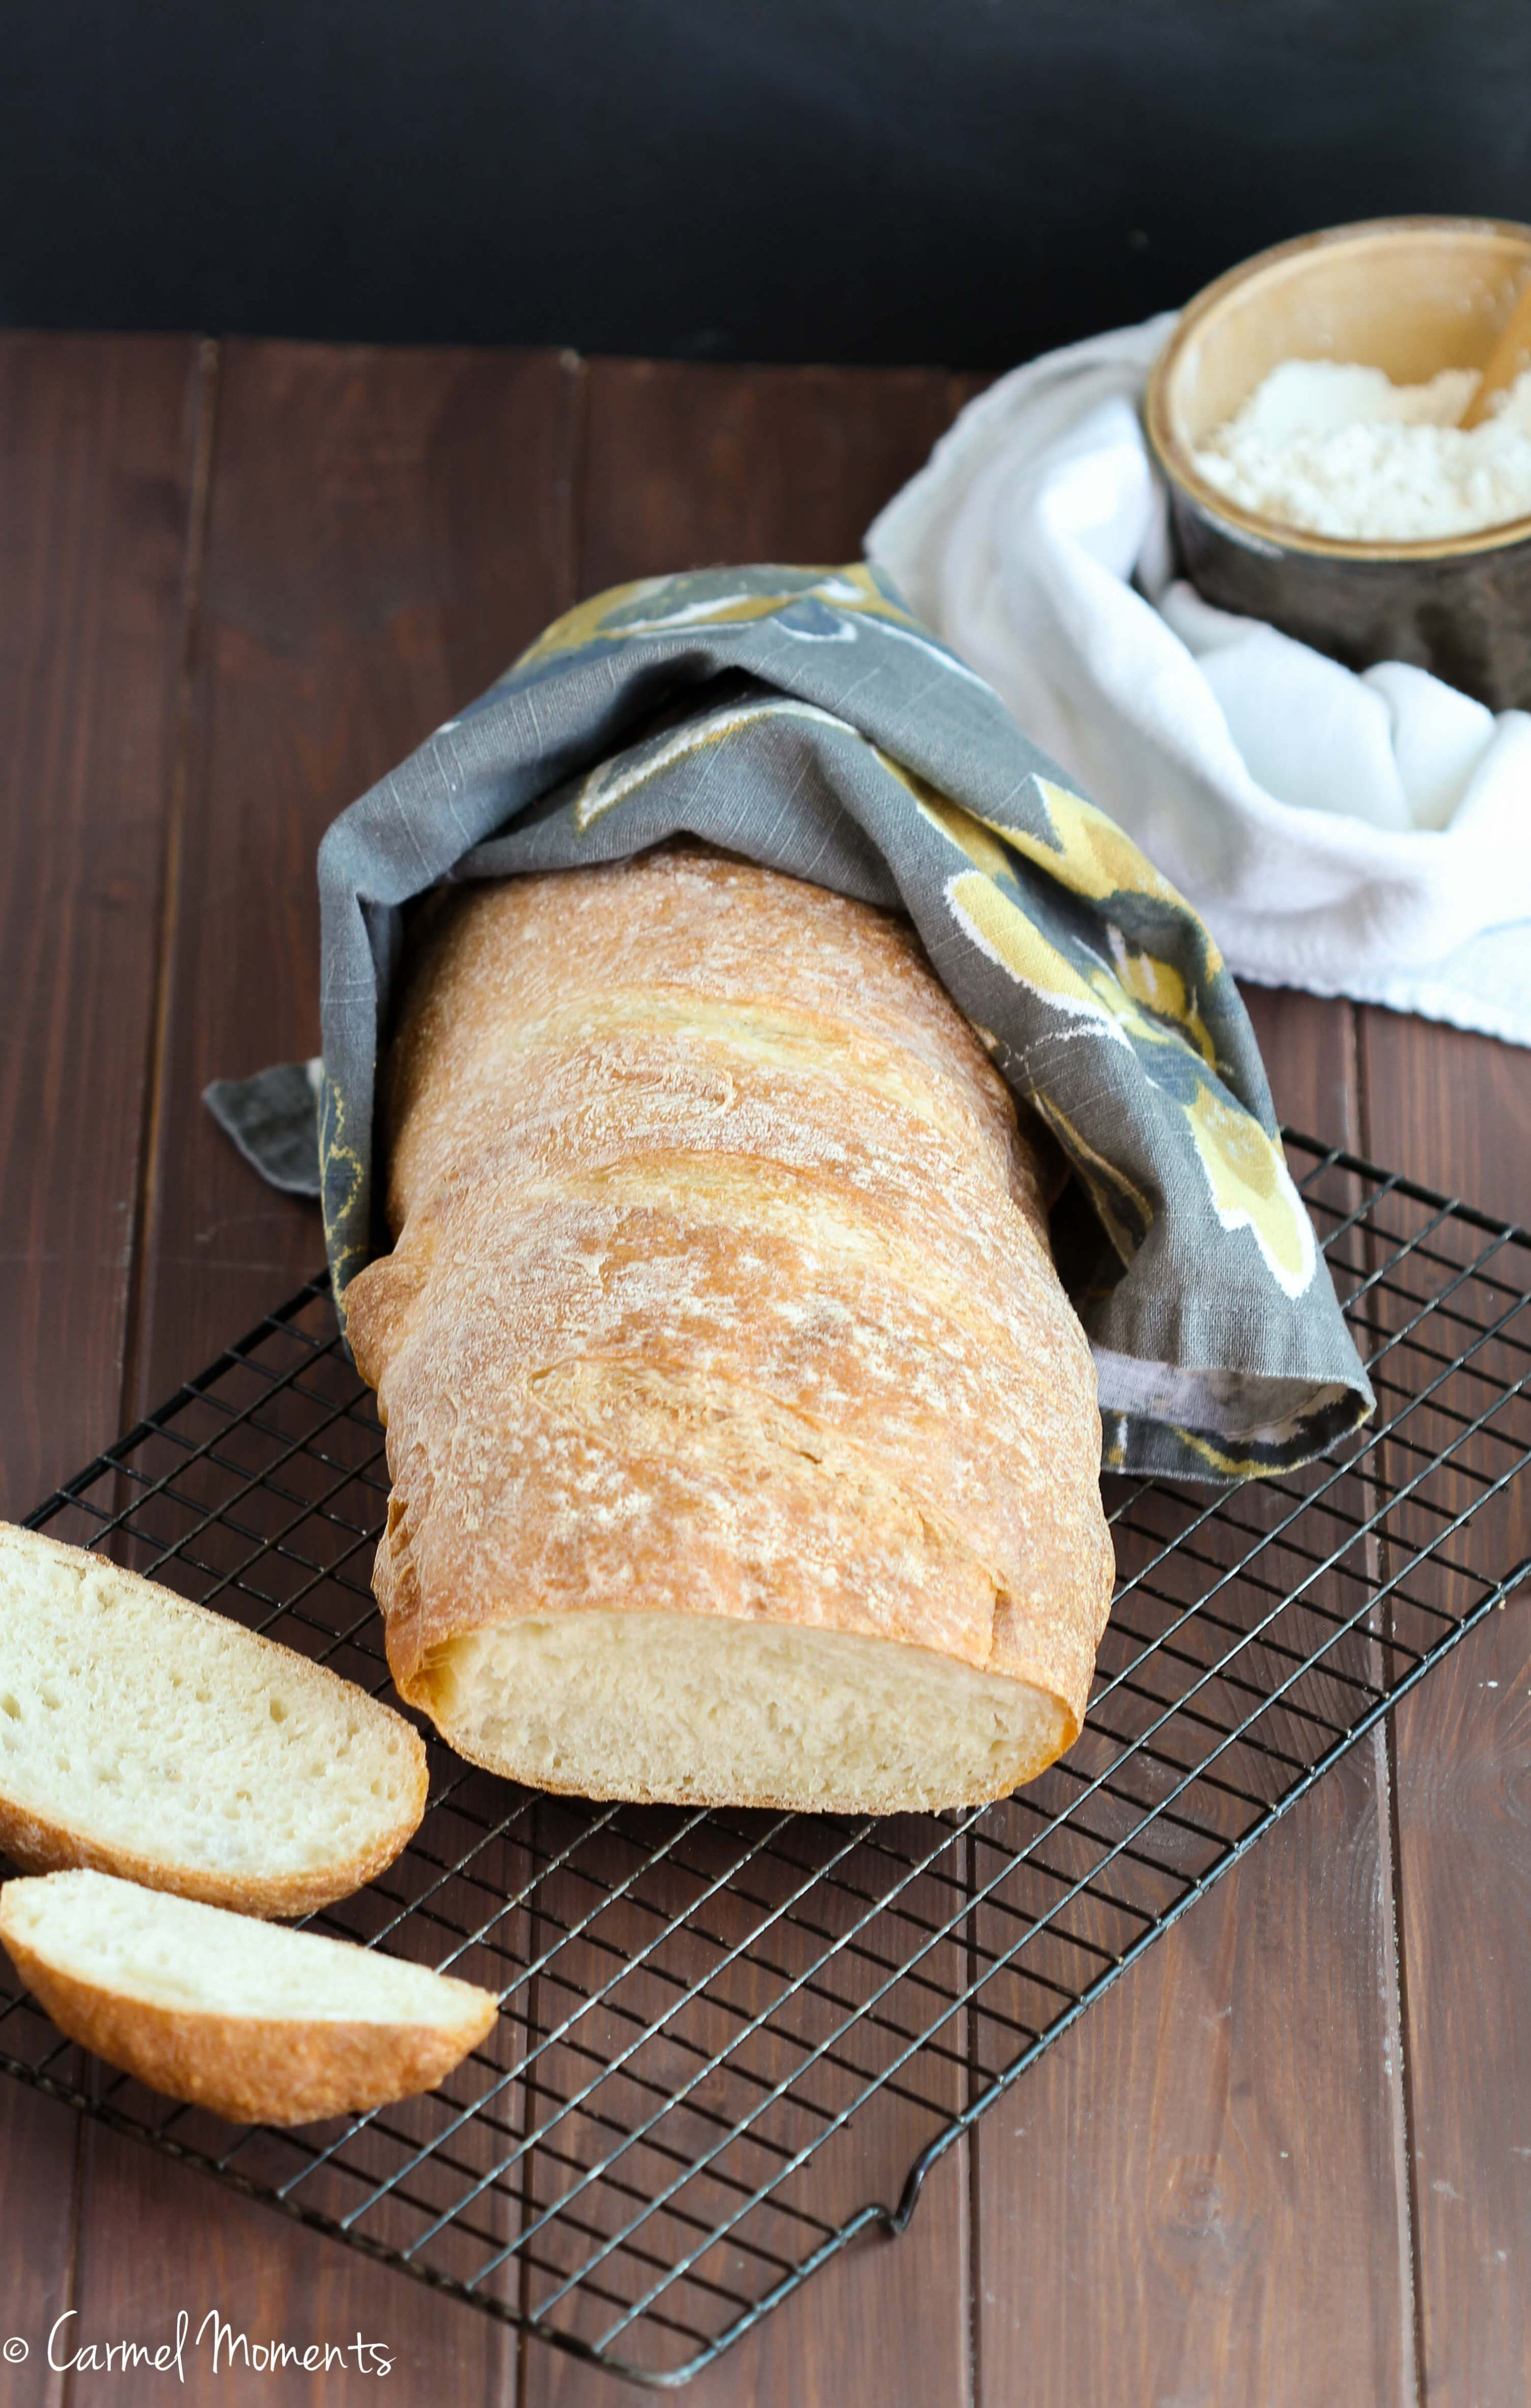 Rustic Italian Bread This Crusty Italian Bread Loaf Makes The Perfect Addition To The Dinner Table Rustic Italian Bread Italian Bread Artisan Bread Recipes